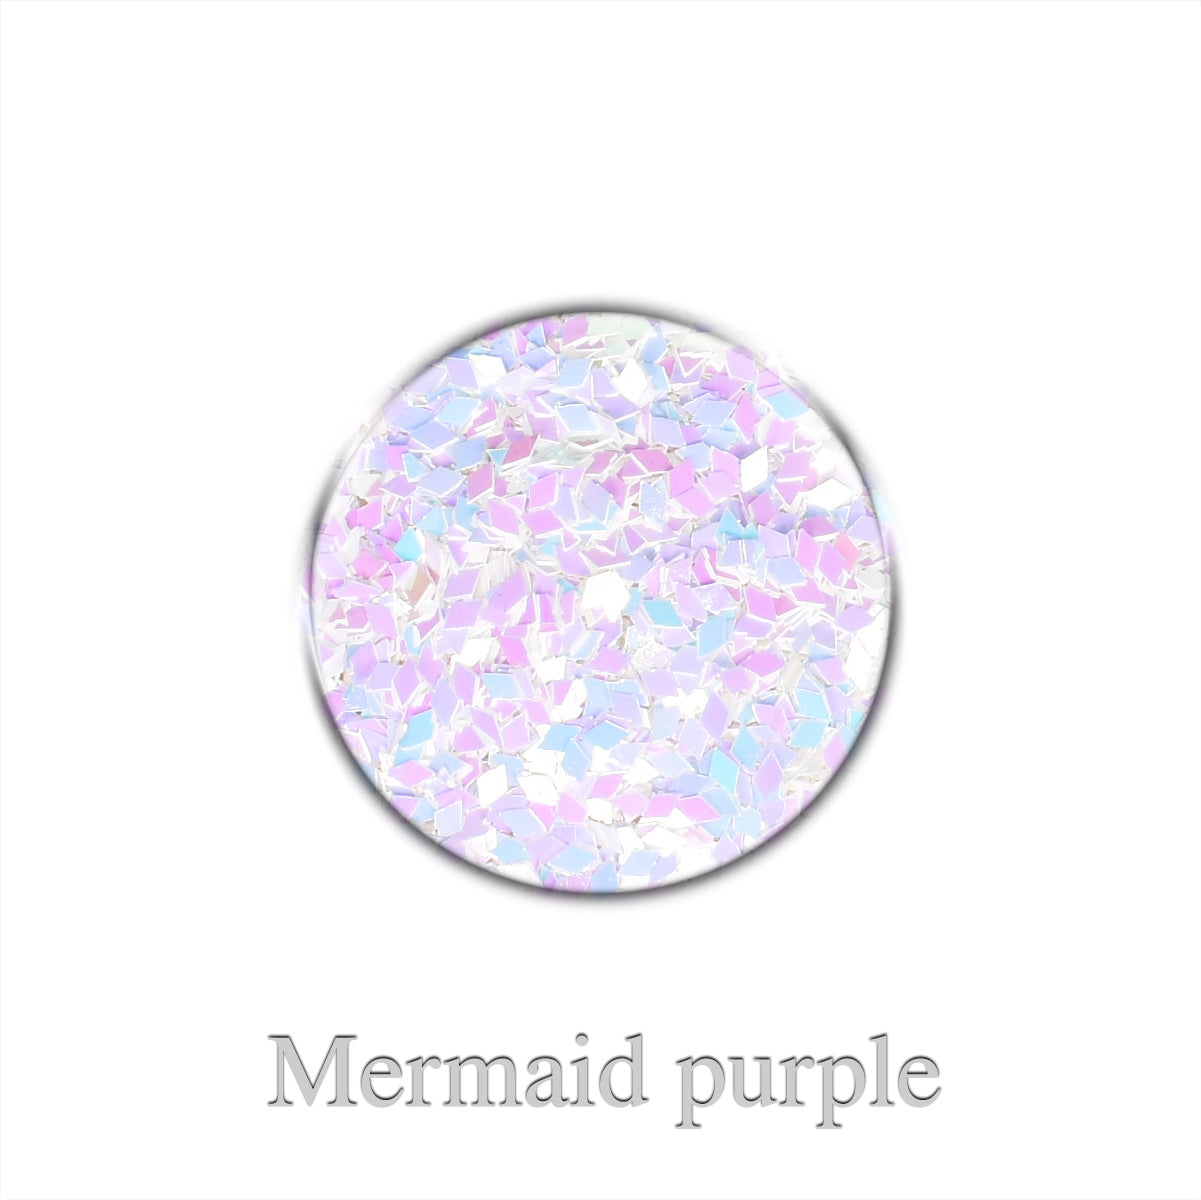 Chrome Rhombus Mini - Mermaid purple